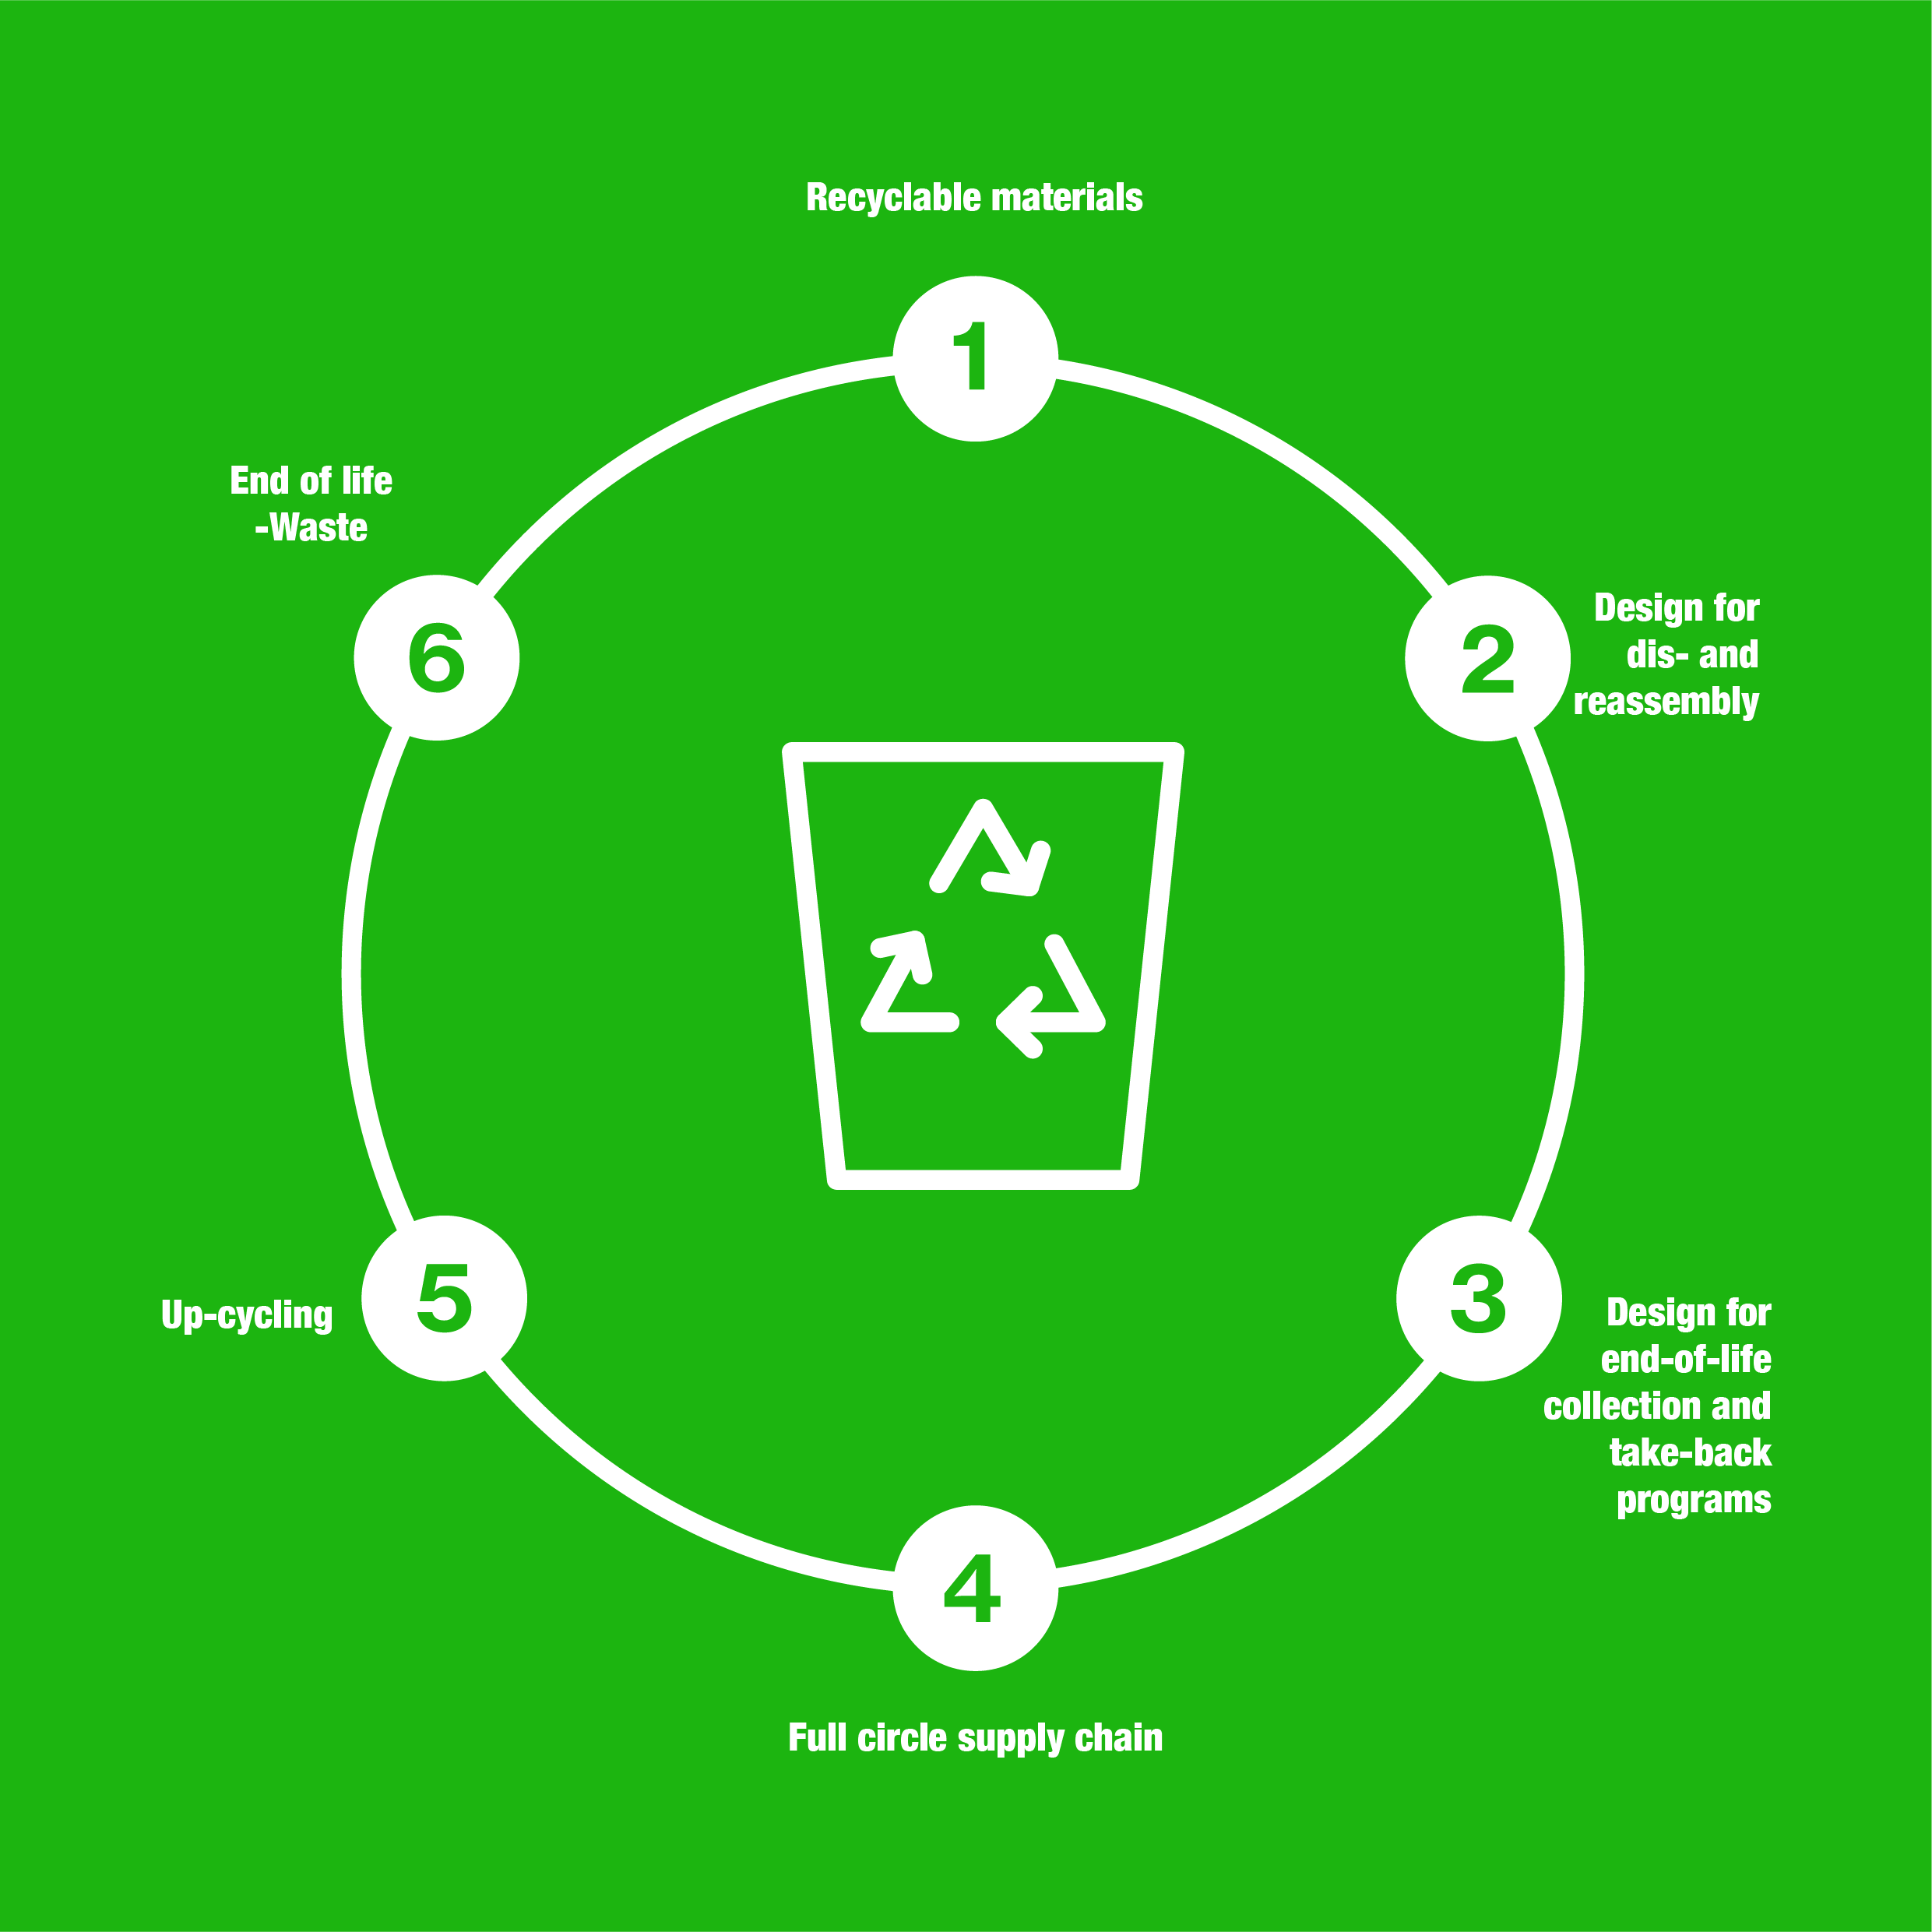 Circle Track Supply >> End of life – infinity recycling - Sustainability Guide